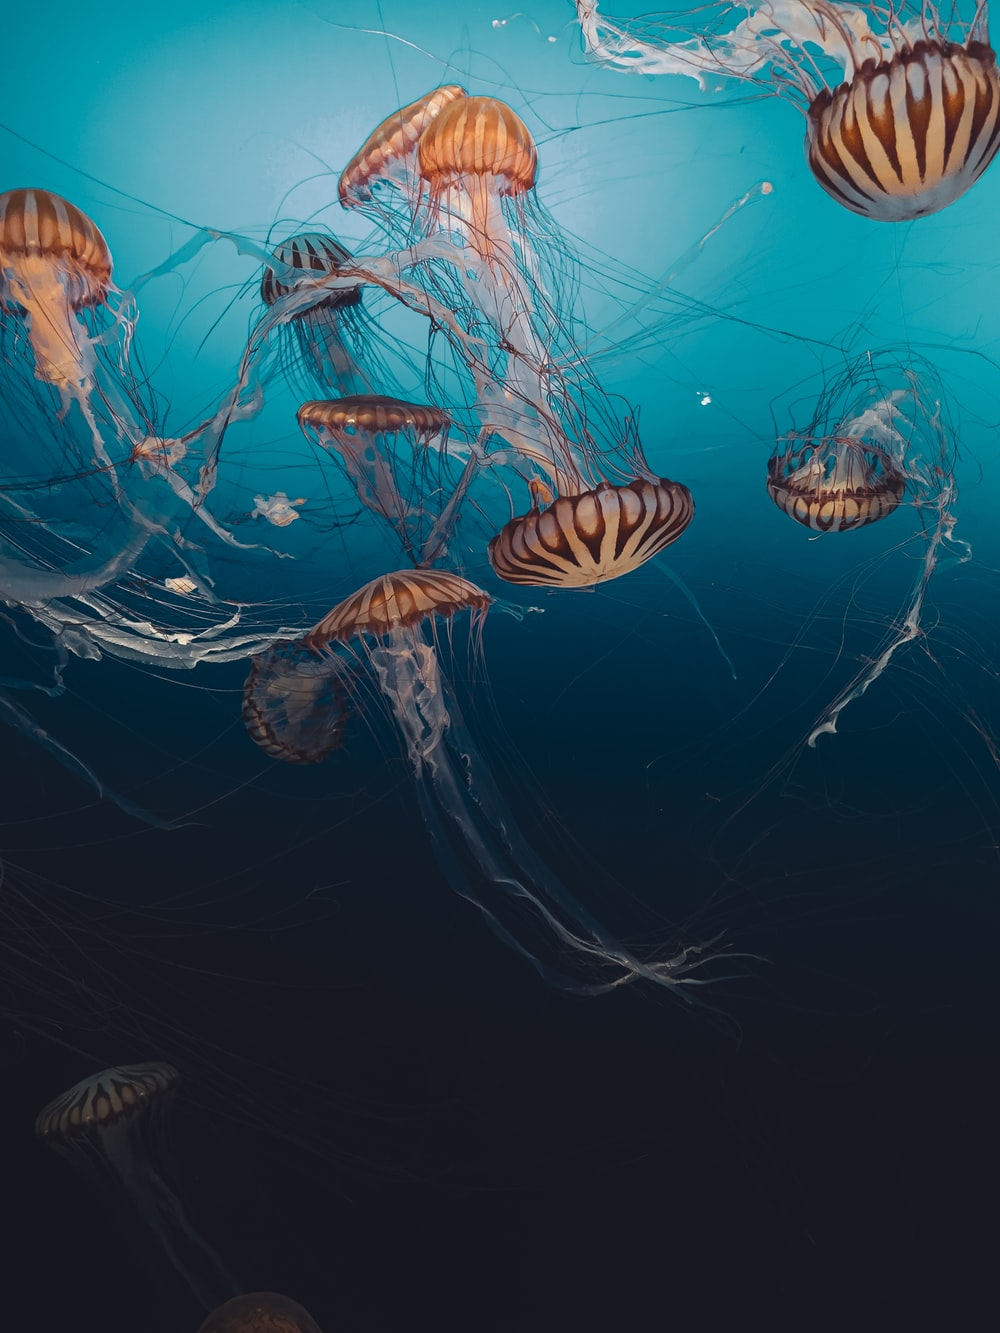 brown and white jellyfish under water